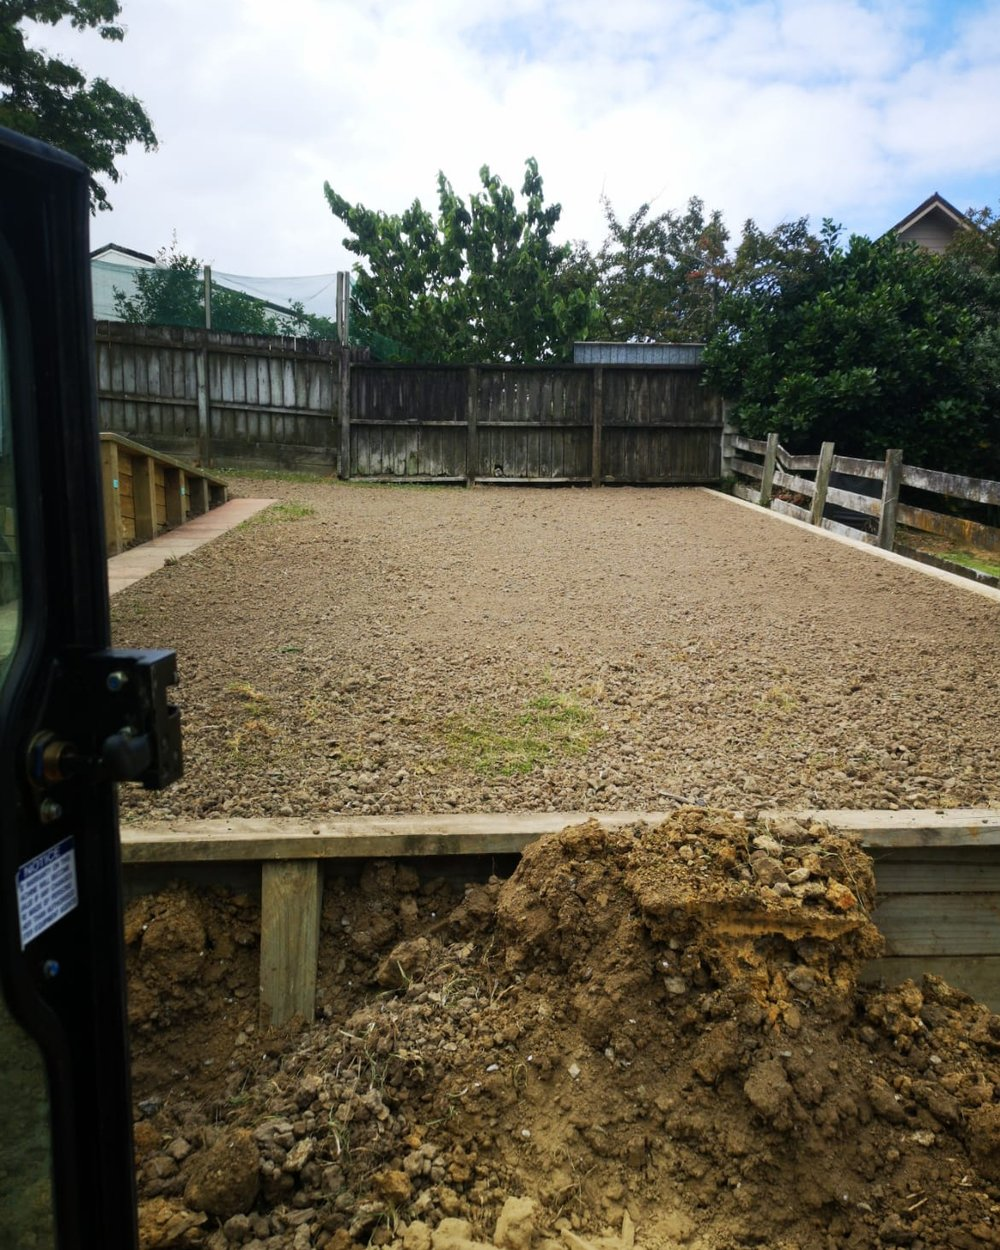 Snells Beach   Lawn reshaping with new topsoil and grass seeds. Let it rain!